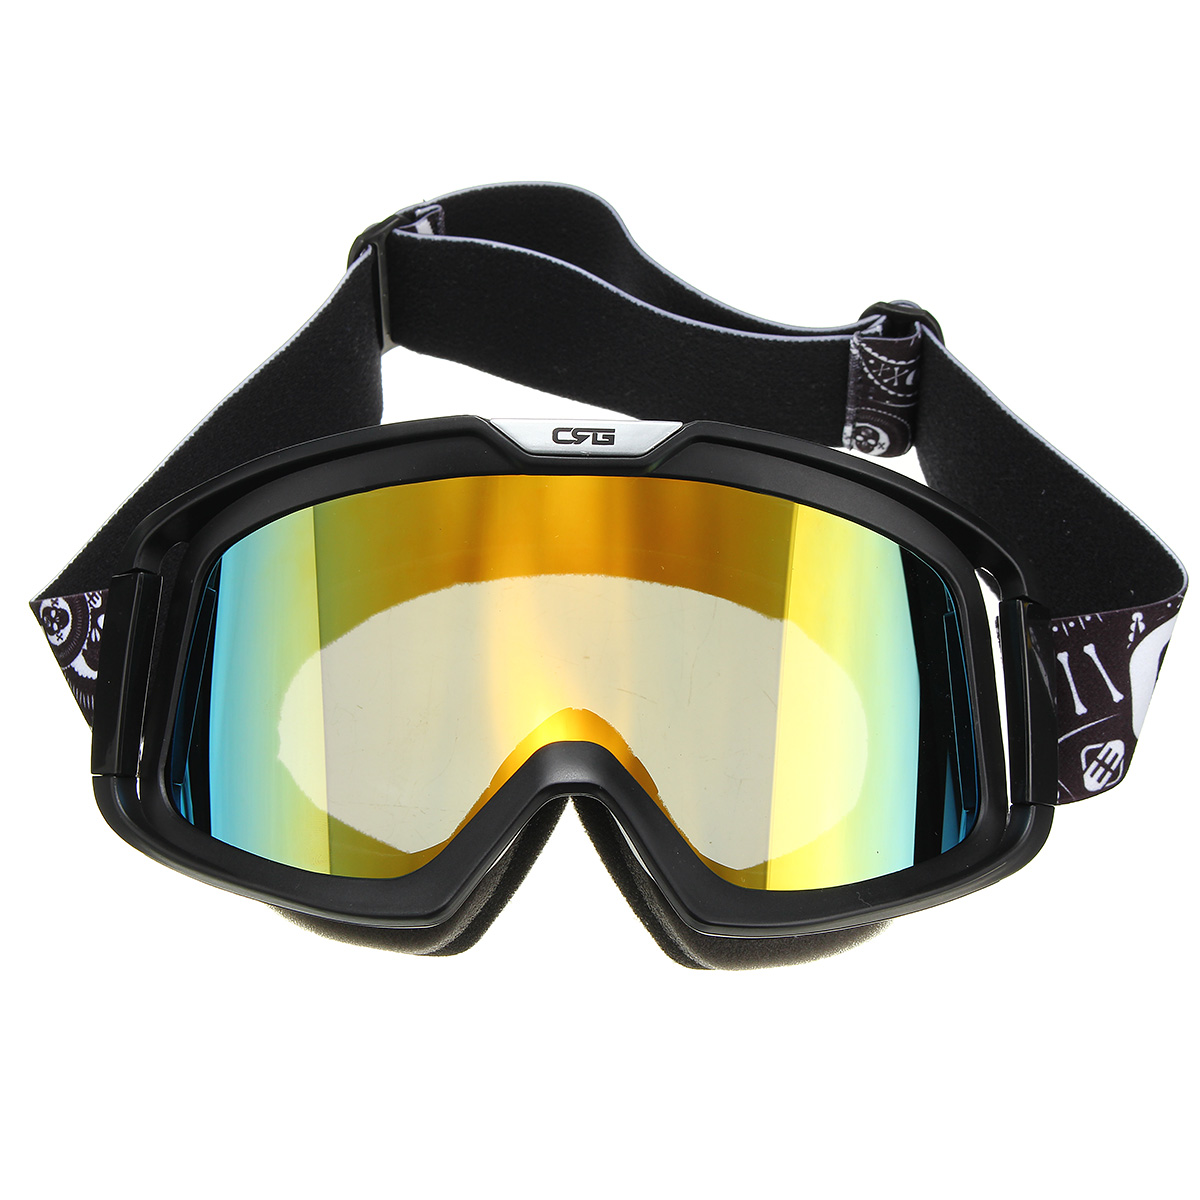 Motorcycle Helmet Yellow Lens Detachable Goggles Modular Face Mask Shield